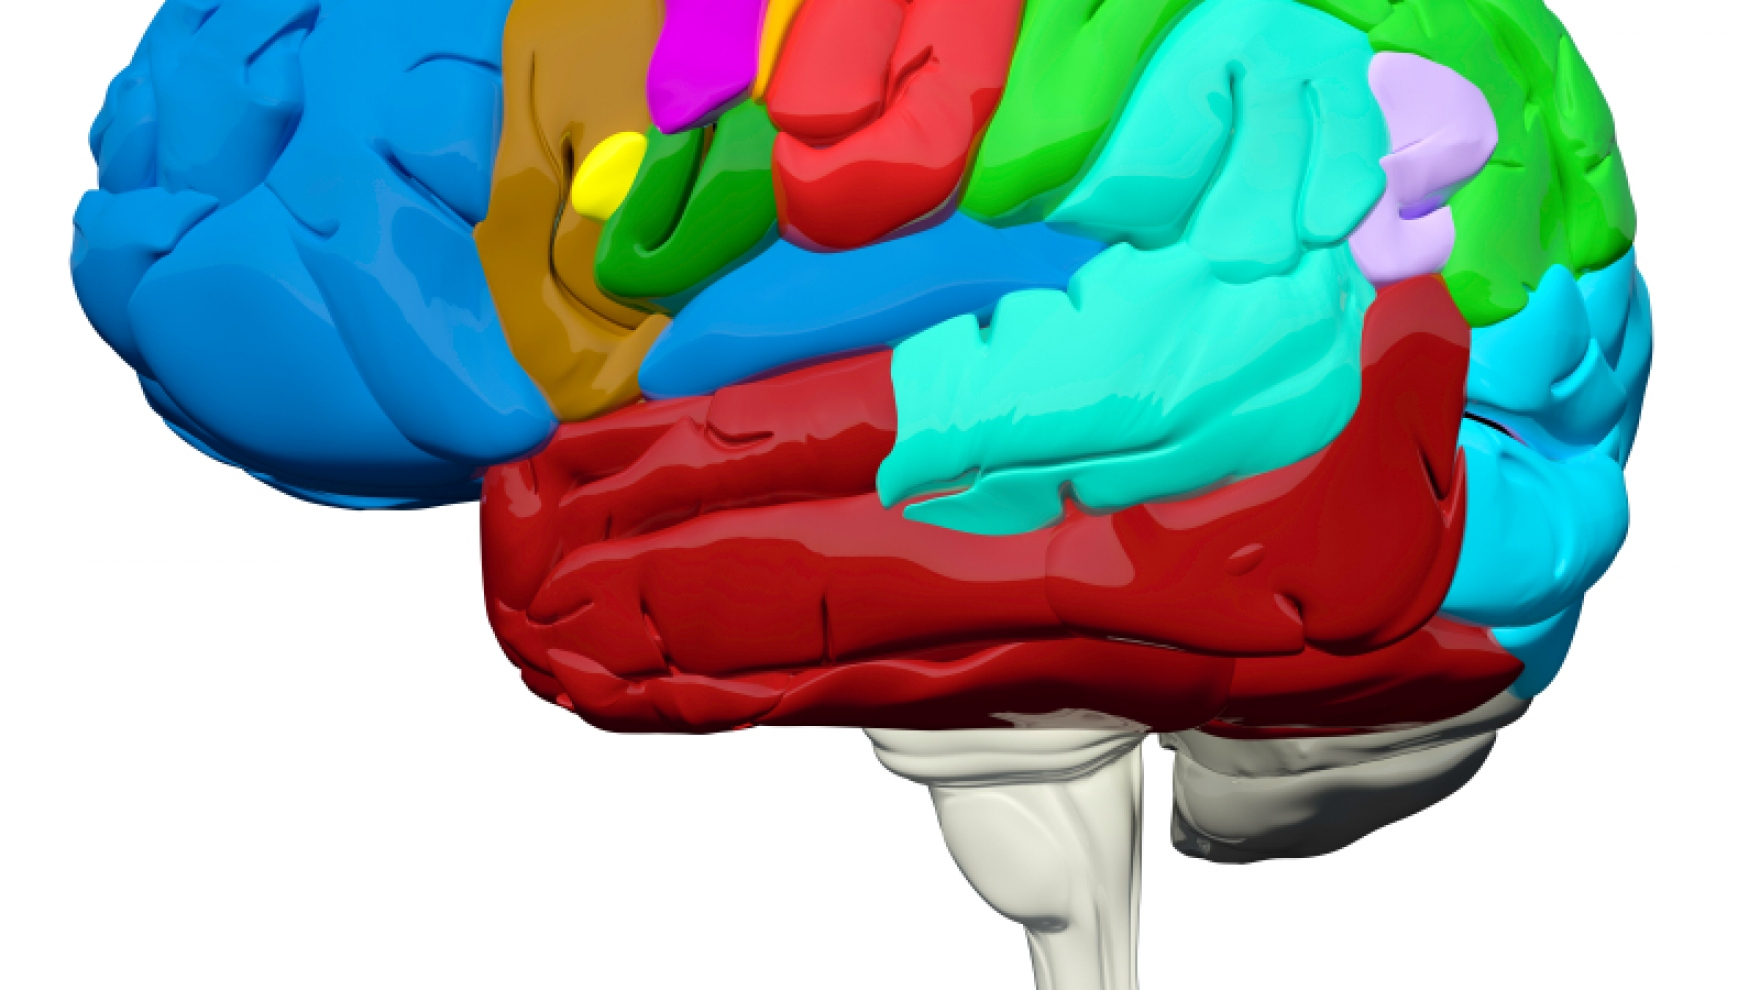 Cocaine Use Leads to Rapid Growth of New Mouse Brain Structures | UC ...